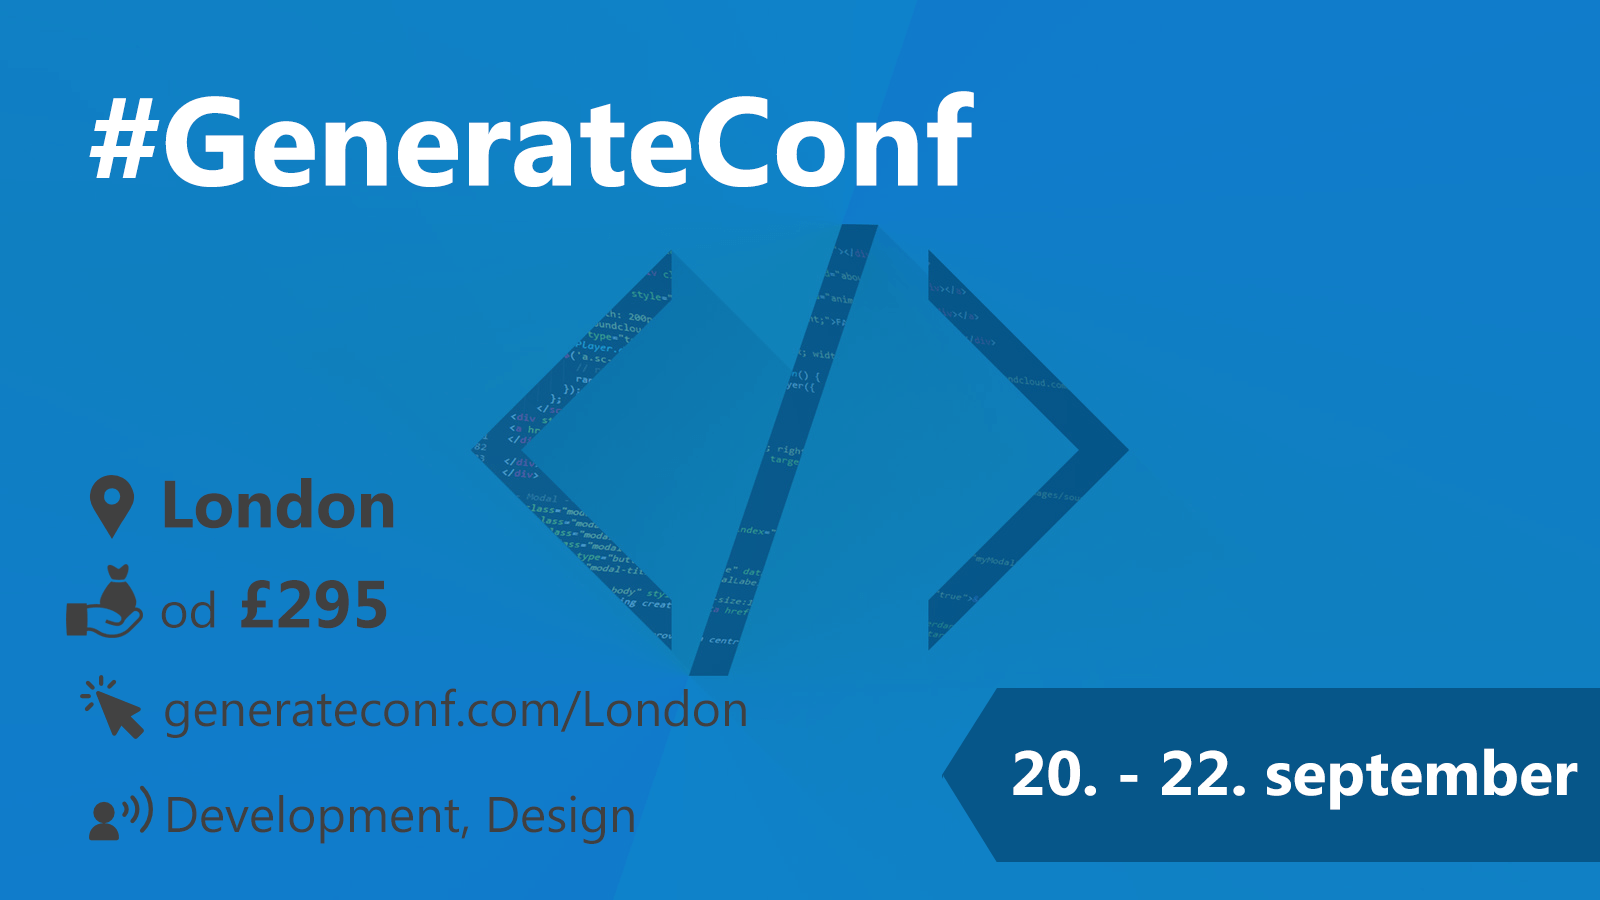 #GenerateConf 20-22.9